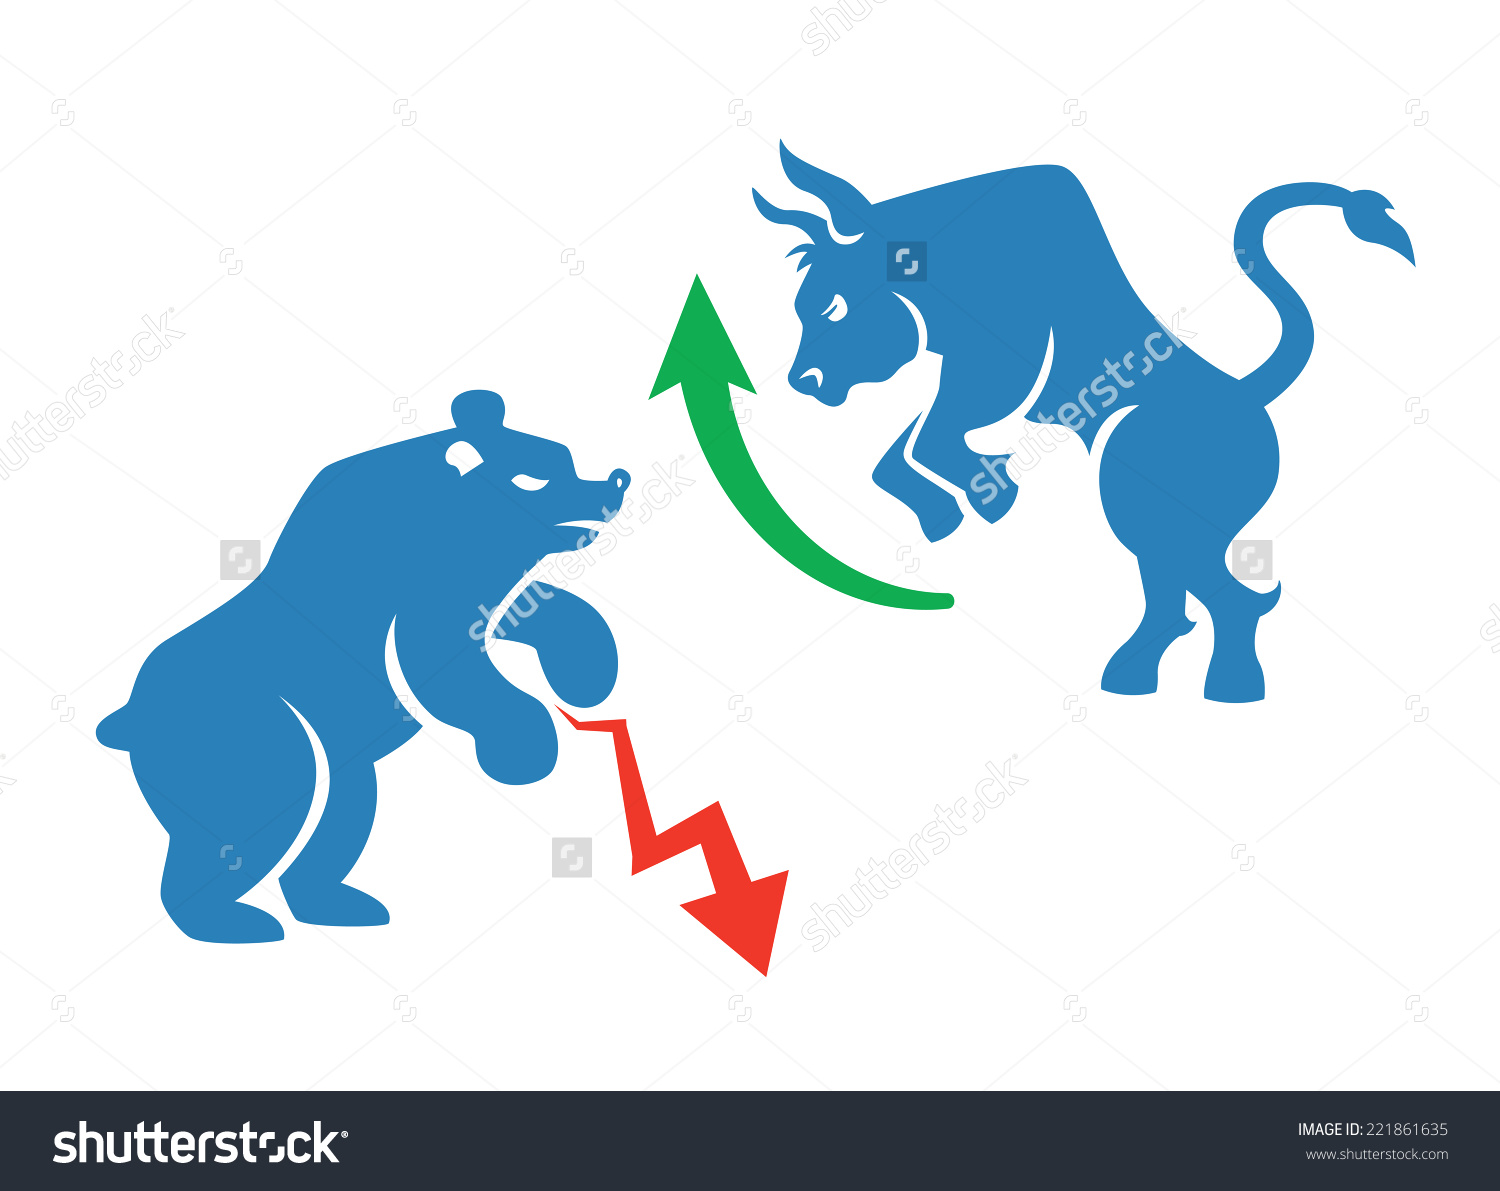 Vector Stock Market Icons Bear Bull Stock Vector 221861635.